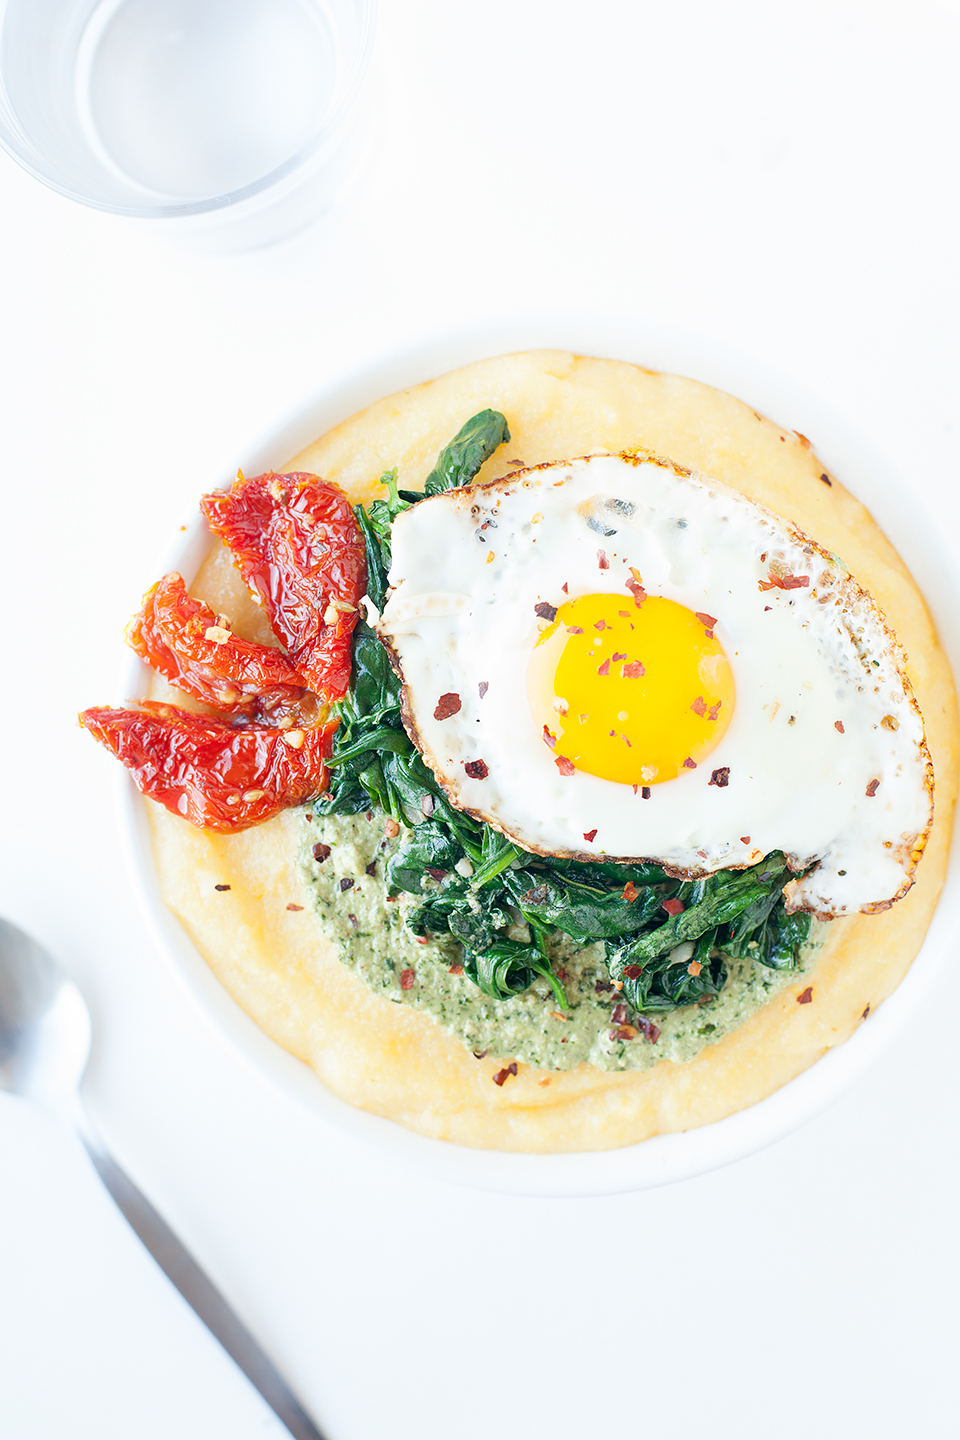 Pesto Polenta Bowls with Eggs and Spinach | Gluten-Free and Vegetarian | Loveleaf Co.